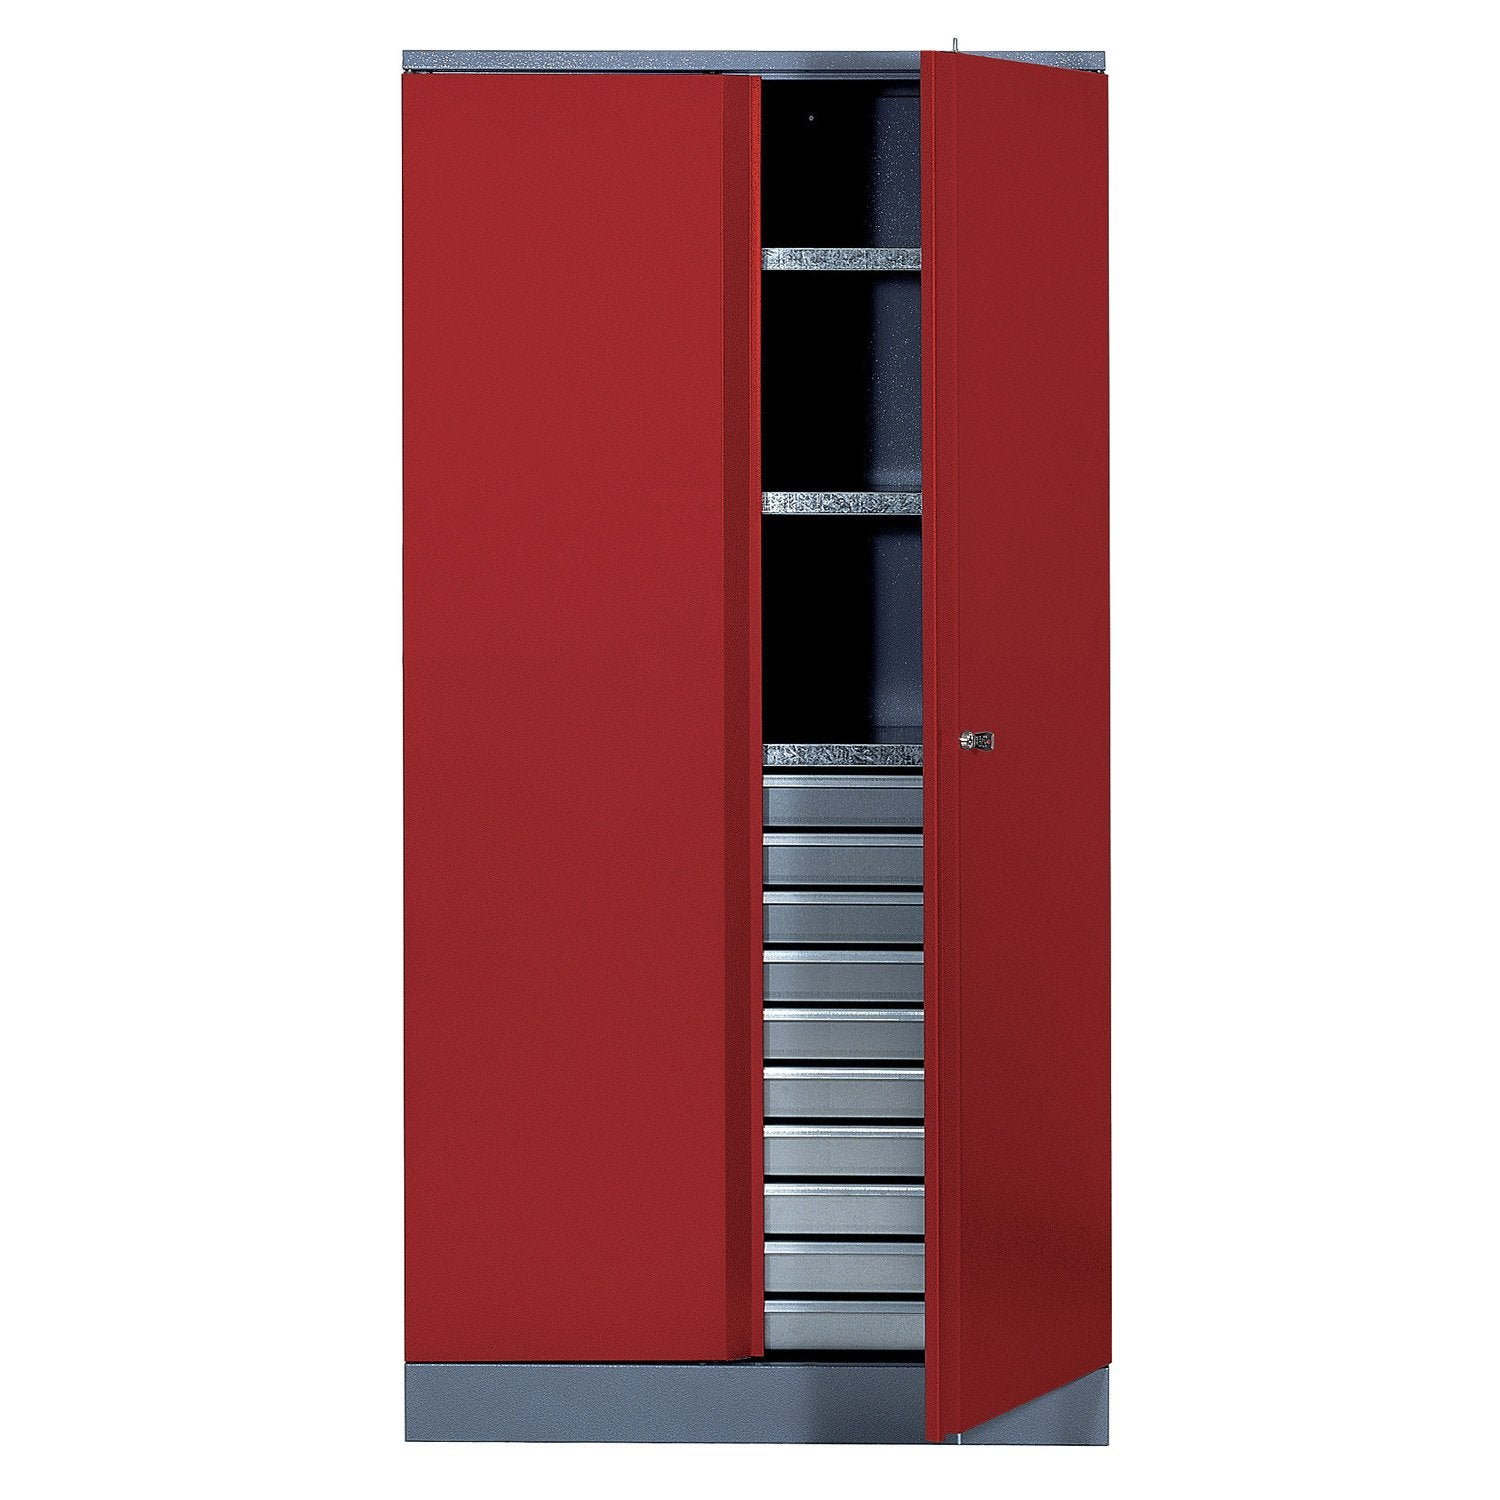 armoire de rangement en m tal rouge kupper 91 cm 1 porte 10 tiroirs leroy merlin. Black Bedroom Furniture Sets. Home Design Ideas